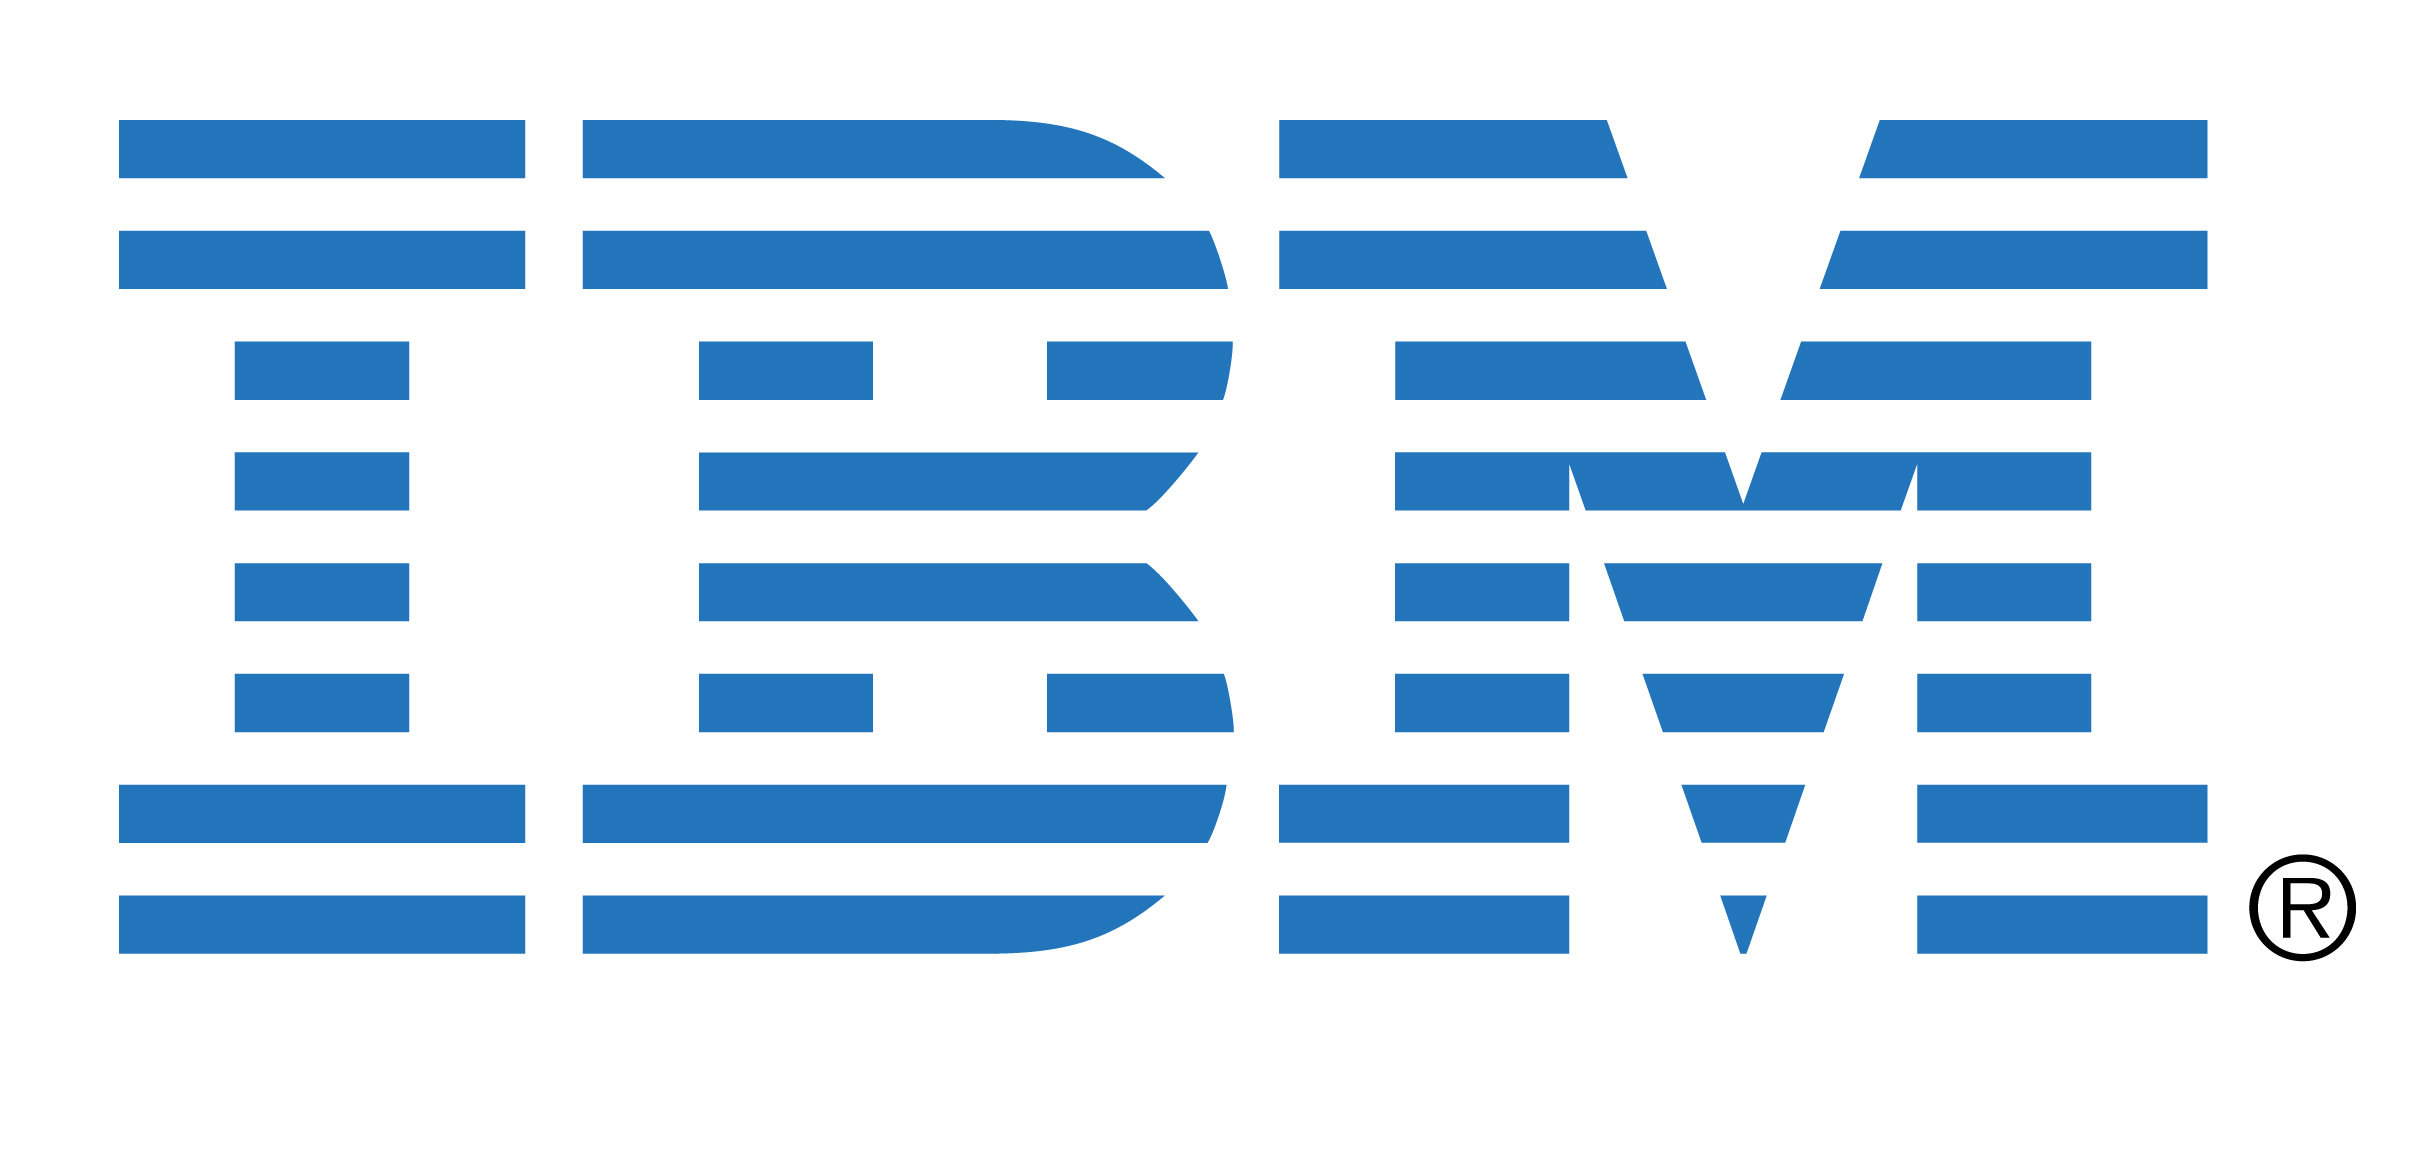 IBM QRadar Event Capacity 100 Events per Second* D1RNKLL